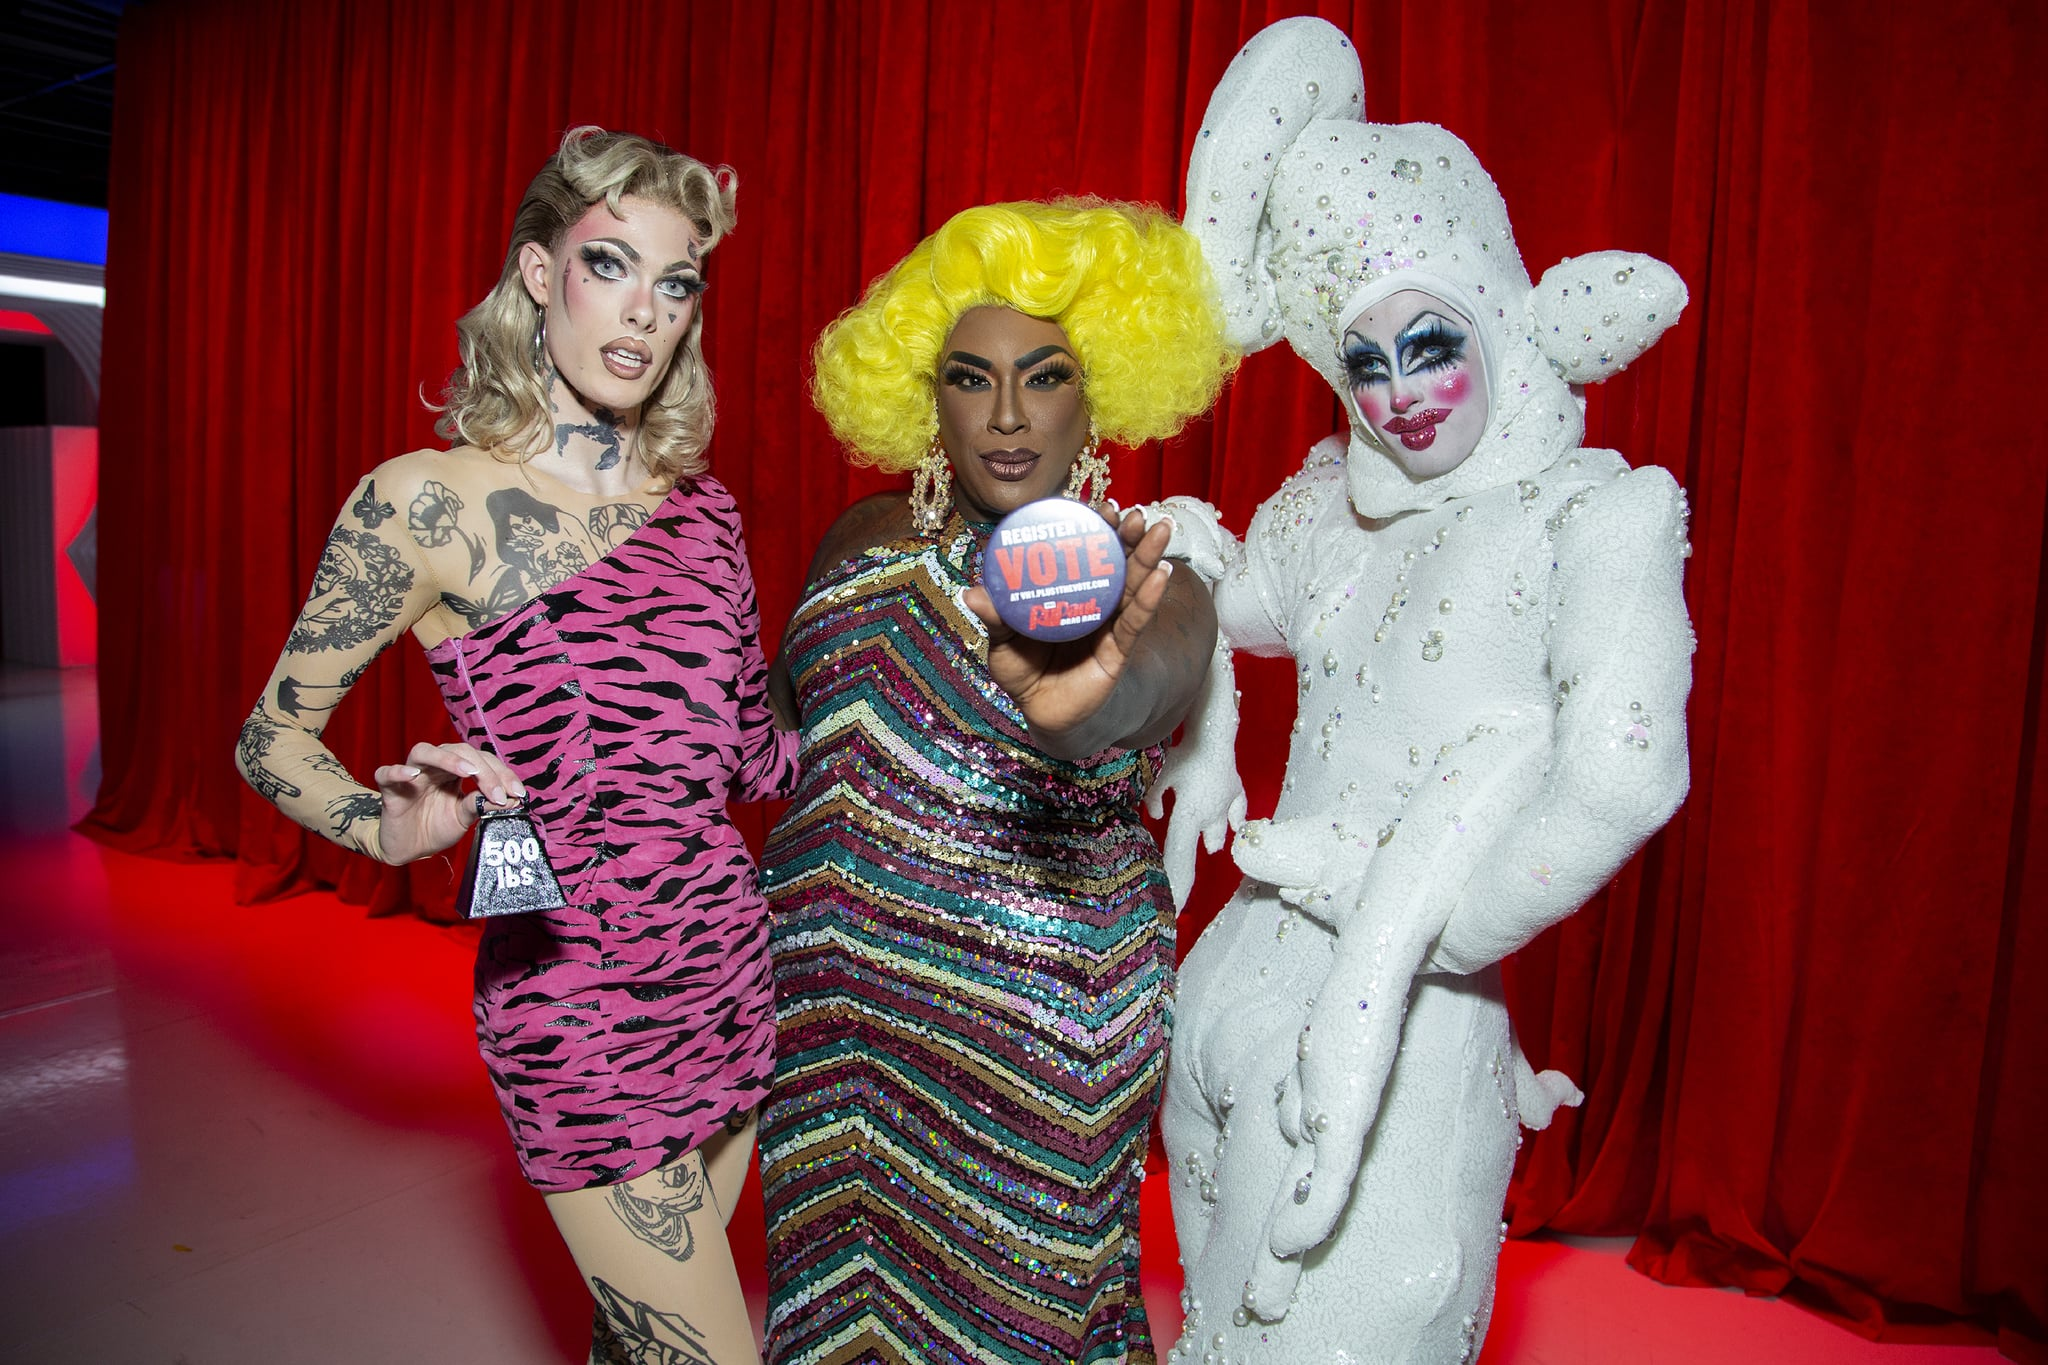 NEW YORK, NEW YORK - FEBRUARY 26: Gigi Goode, Widow Von'Du and Crystal Methyd attend 'RuPaul's Drag Race Season 12' Meet the Queens at TRL Studios on February 26, 2020 in New York City. (Photo by Santiago Felipe/Getty Images)